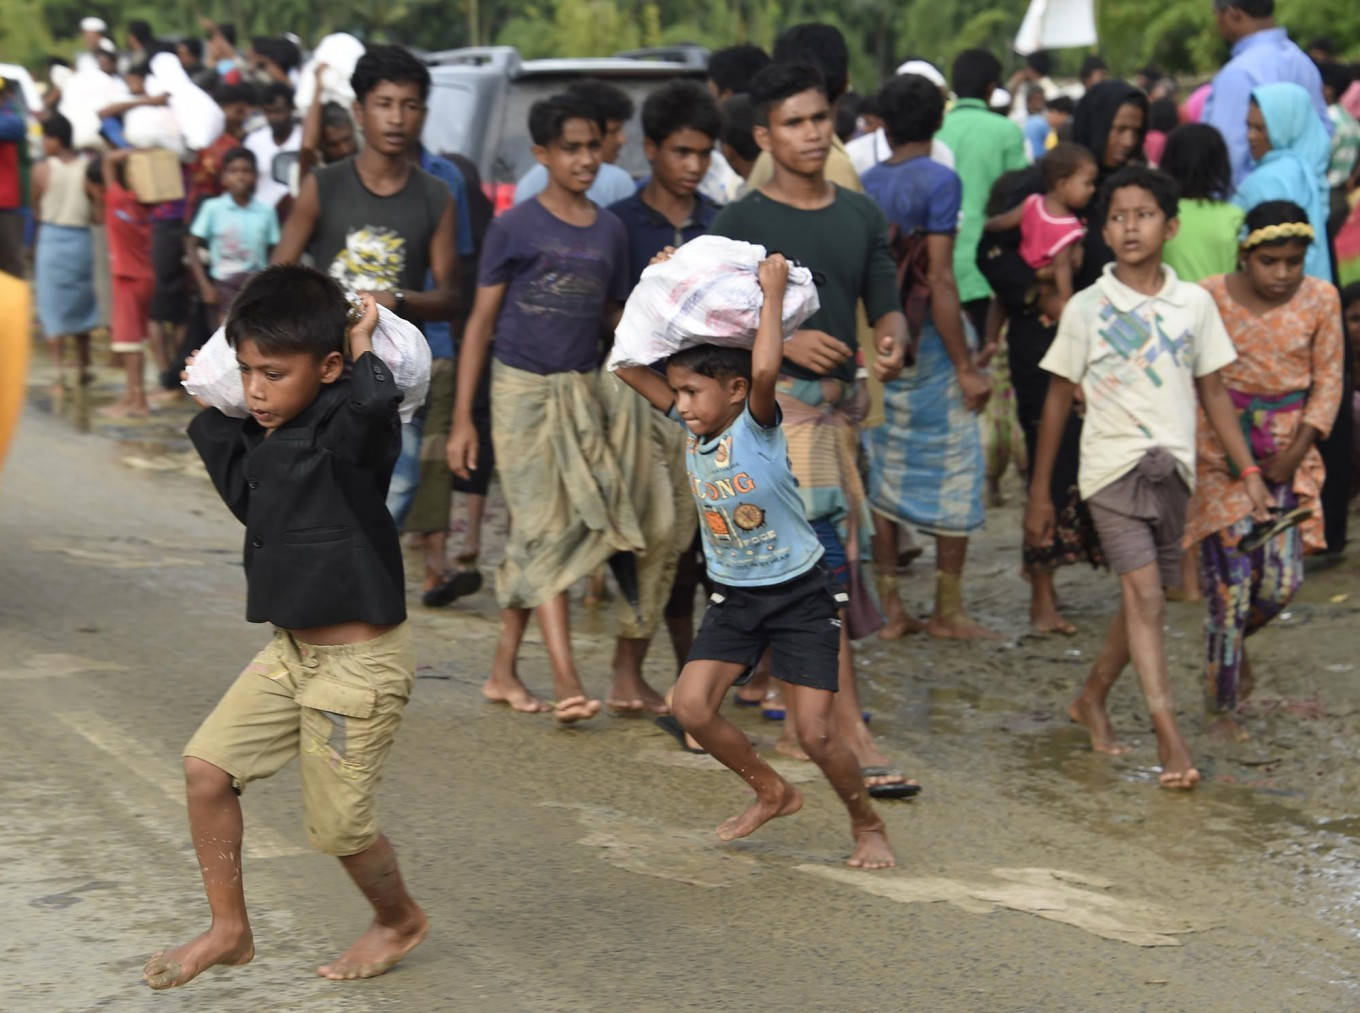 Rohingya Muslim refugee children run after a distribution of supplies at Balukhali refugee camp near the Bangladehsi district of Ukhia on September 19, 2017.